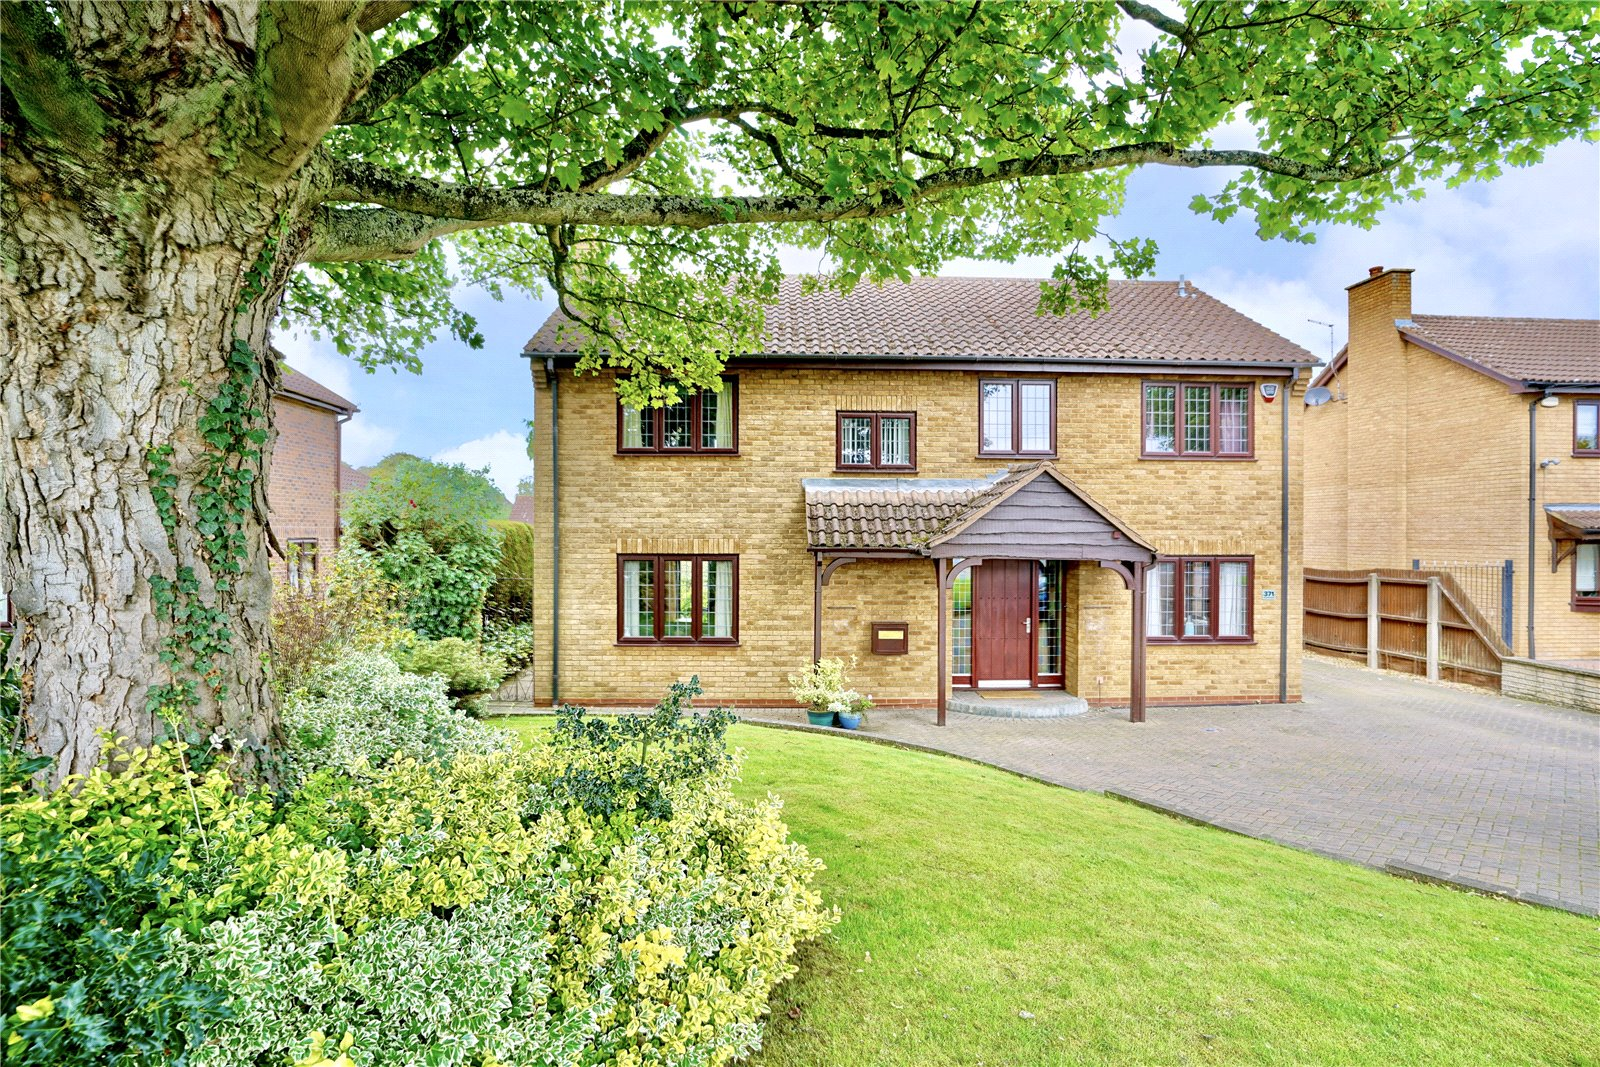 5 bed house for sale in Great North Road, Eaton Ford  - Property Image 23